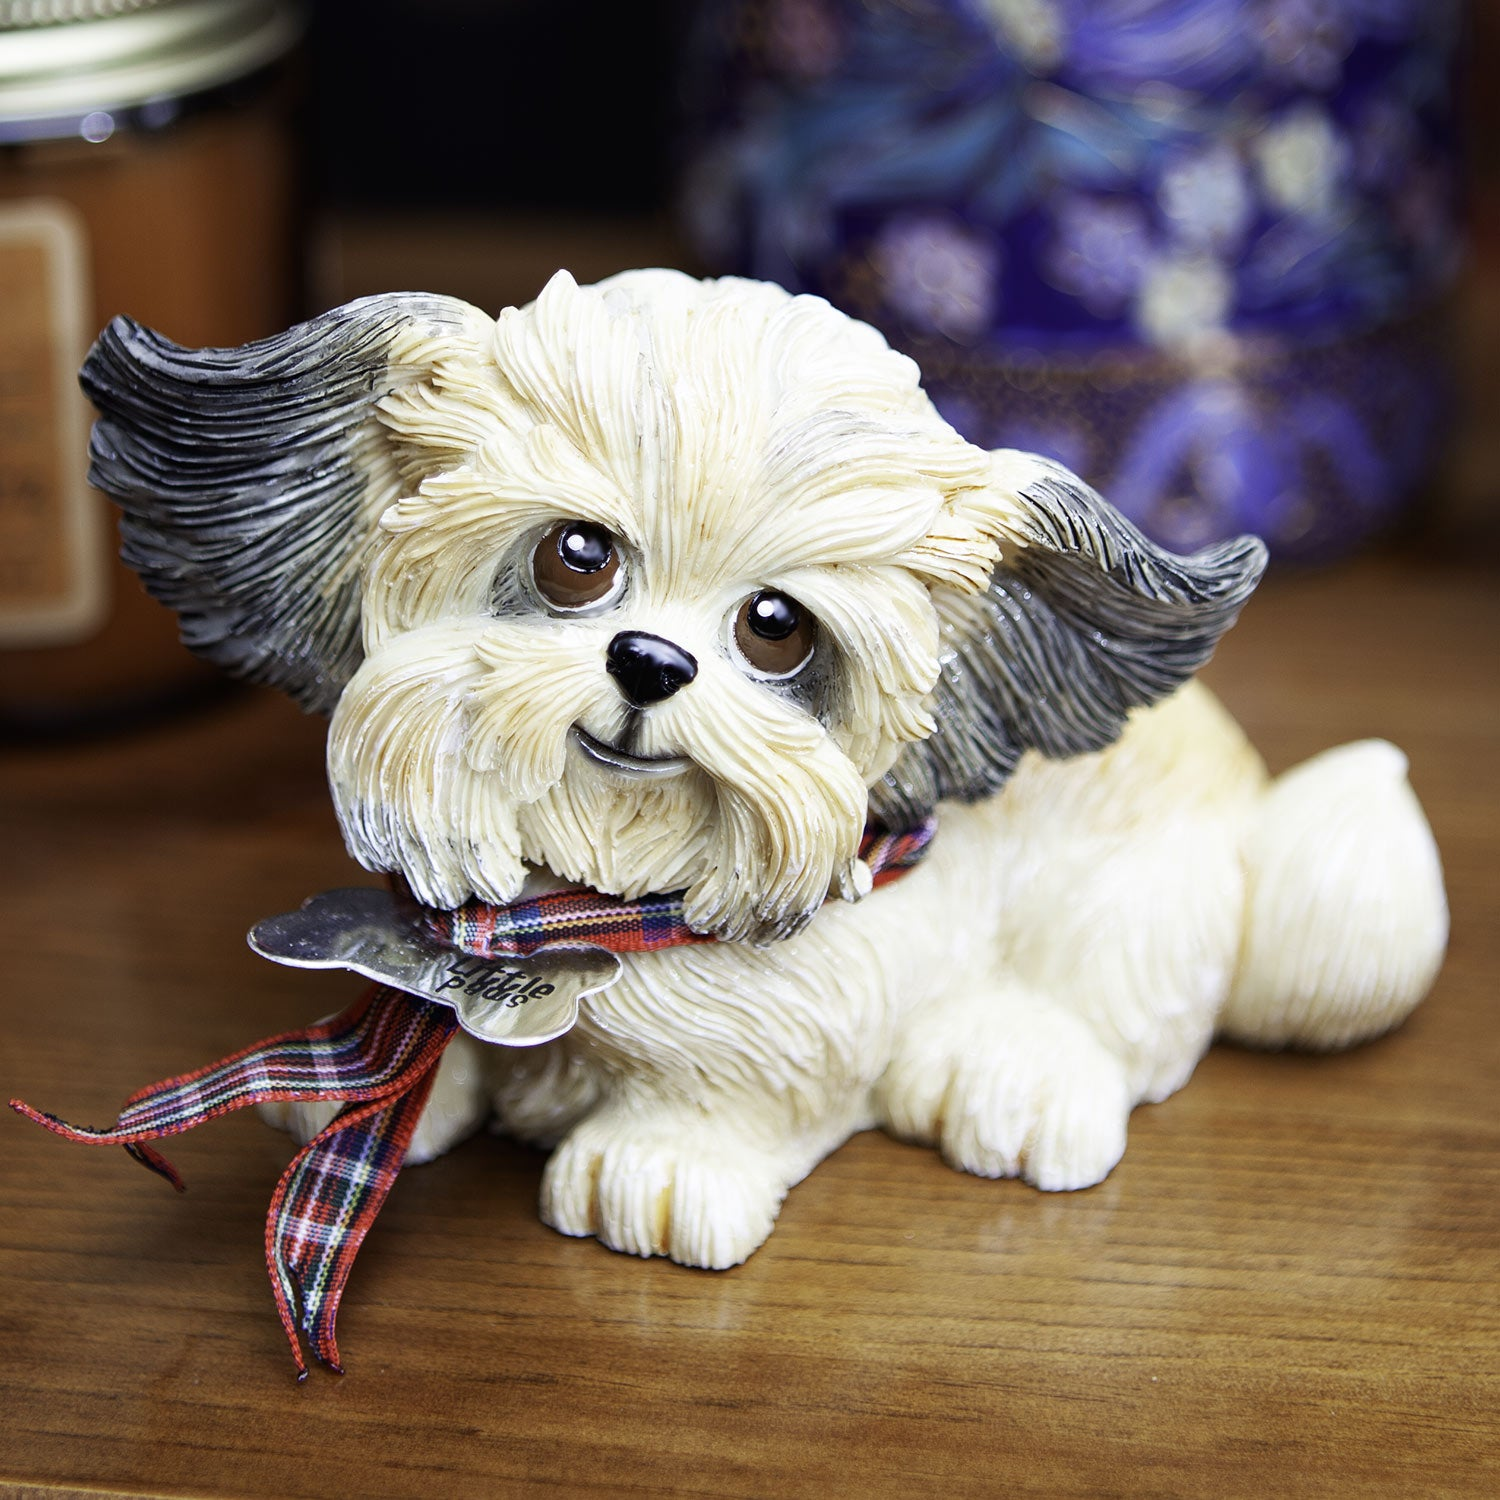 Dog Lover Gifts available at Dog Krazy Gifts - Gizmo The Shi Tzu - part of the Little Paws range available from DogKrazyGifts.co.uk